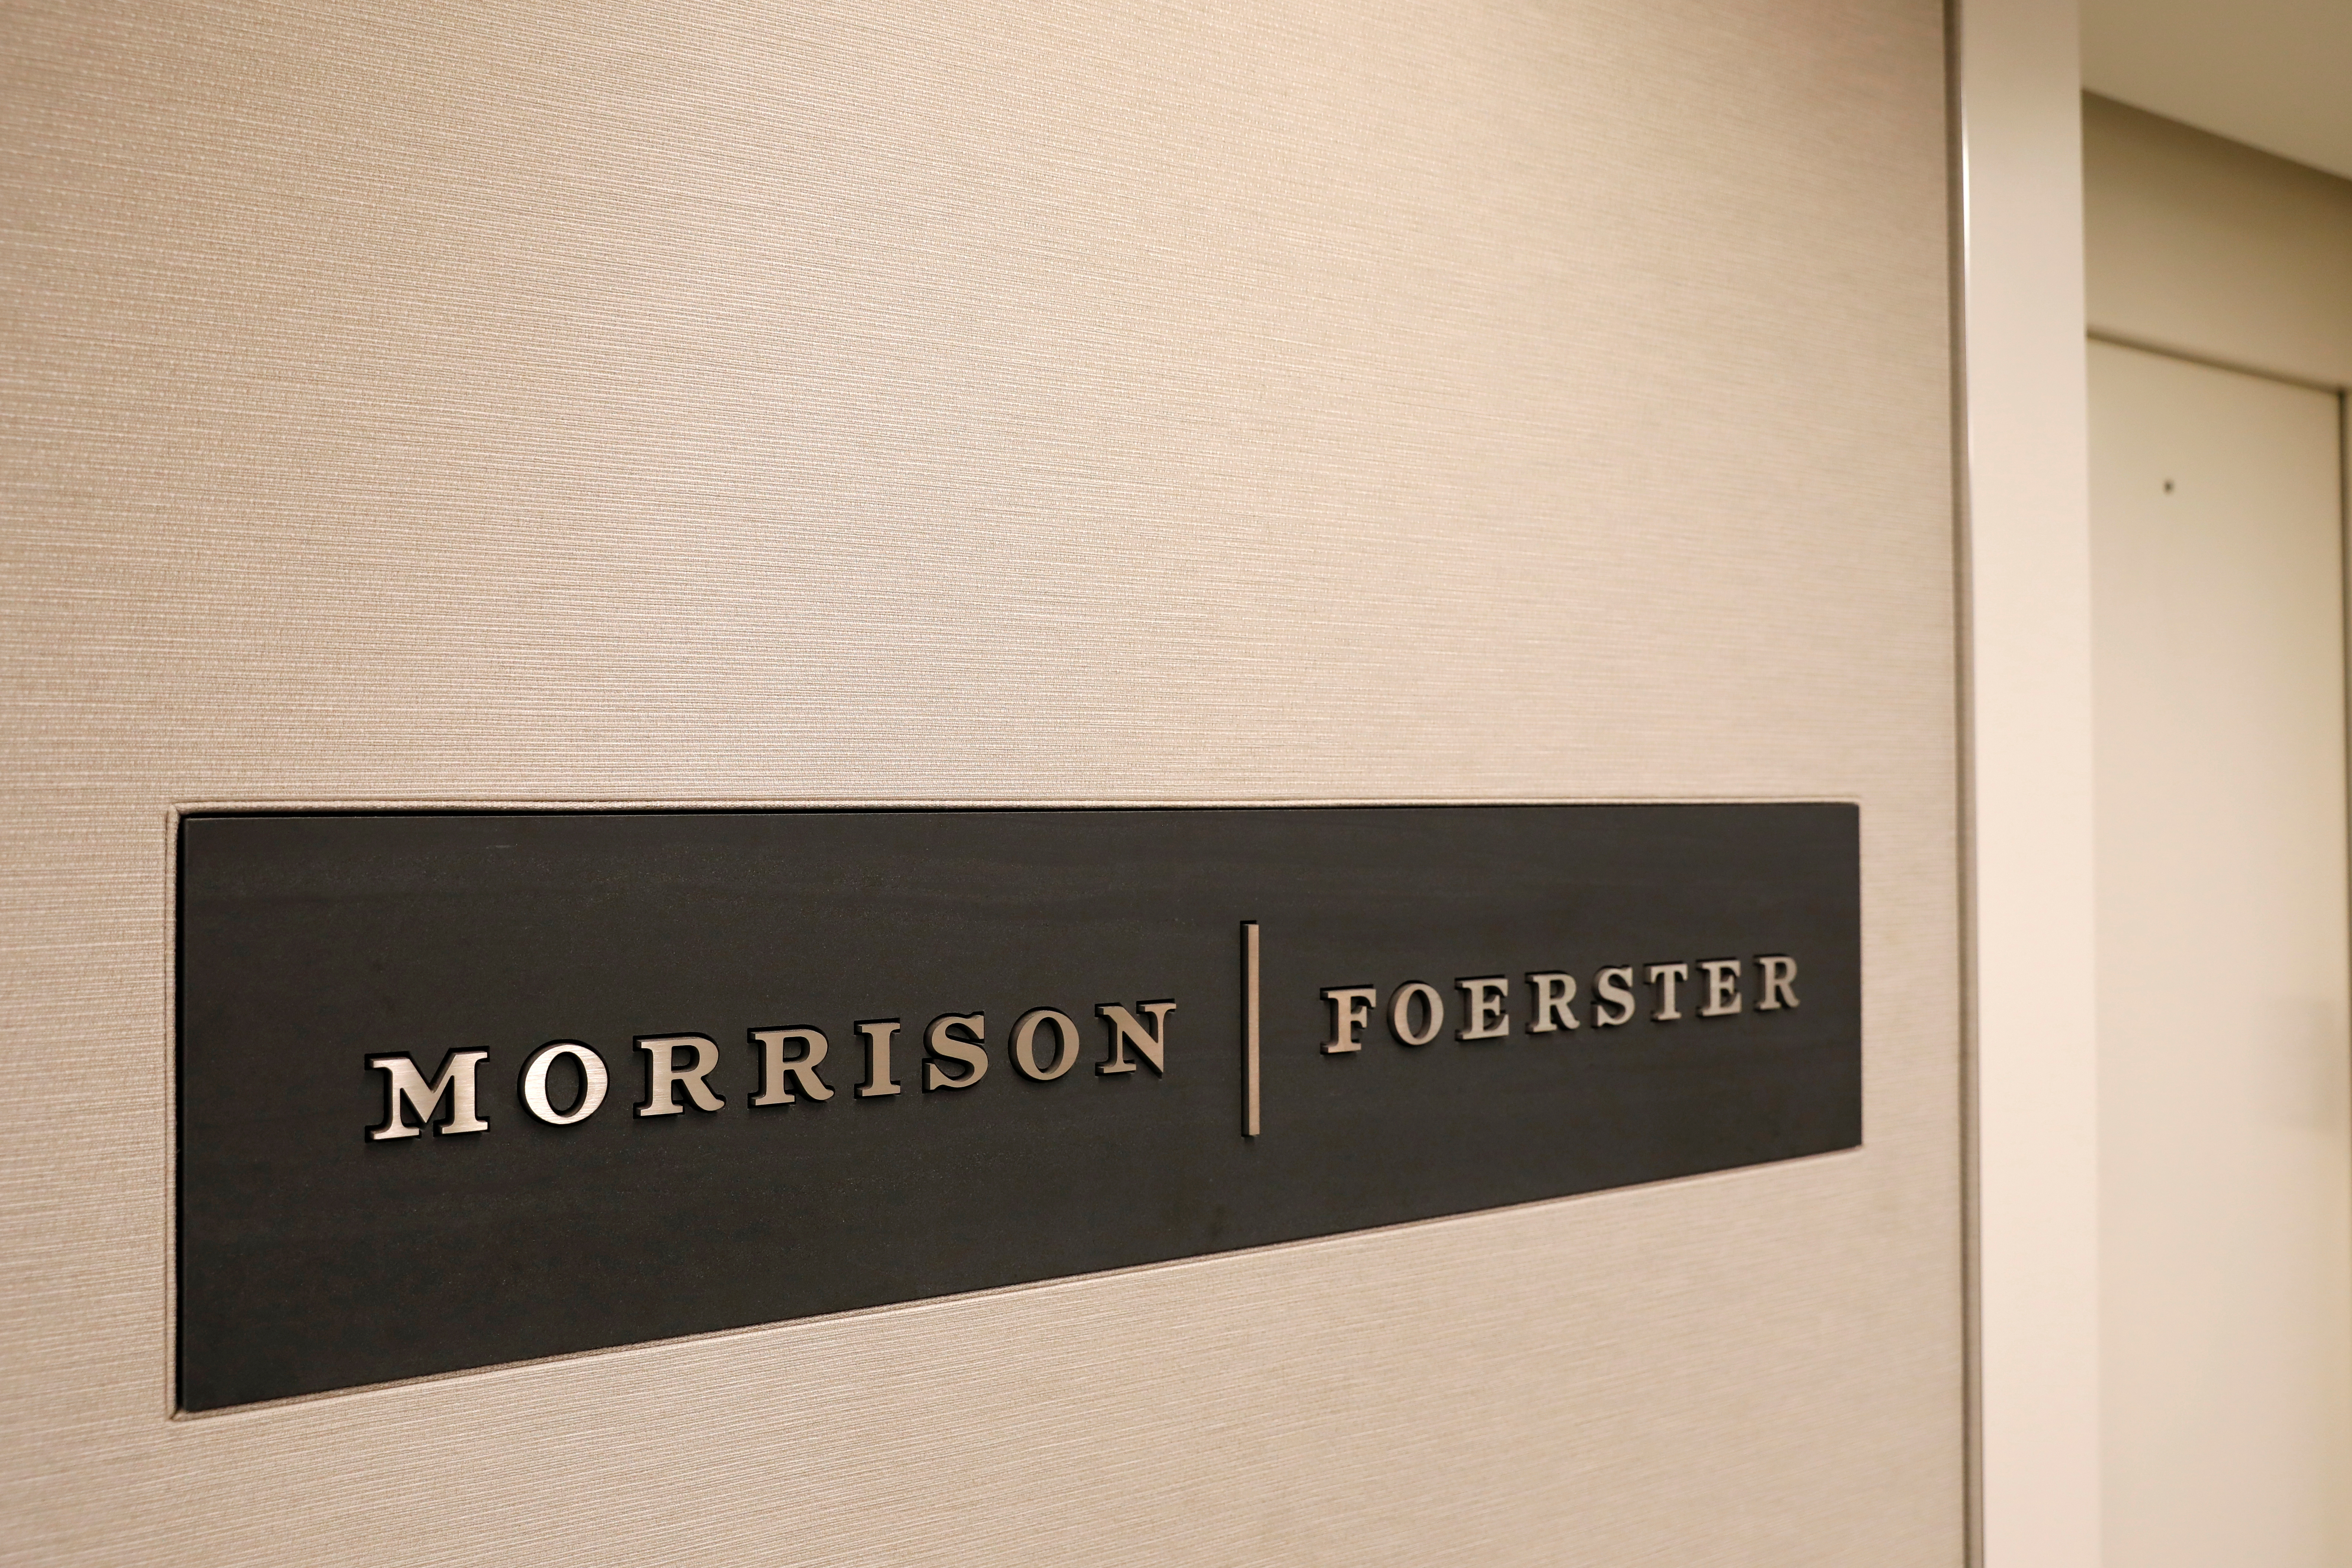 Morrison & Foerster offices in Washington, D.C. REUTERS/Andrew Kelly